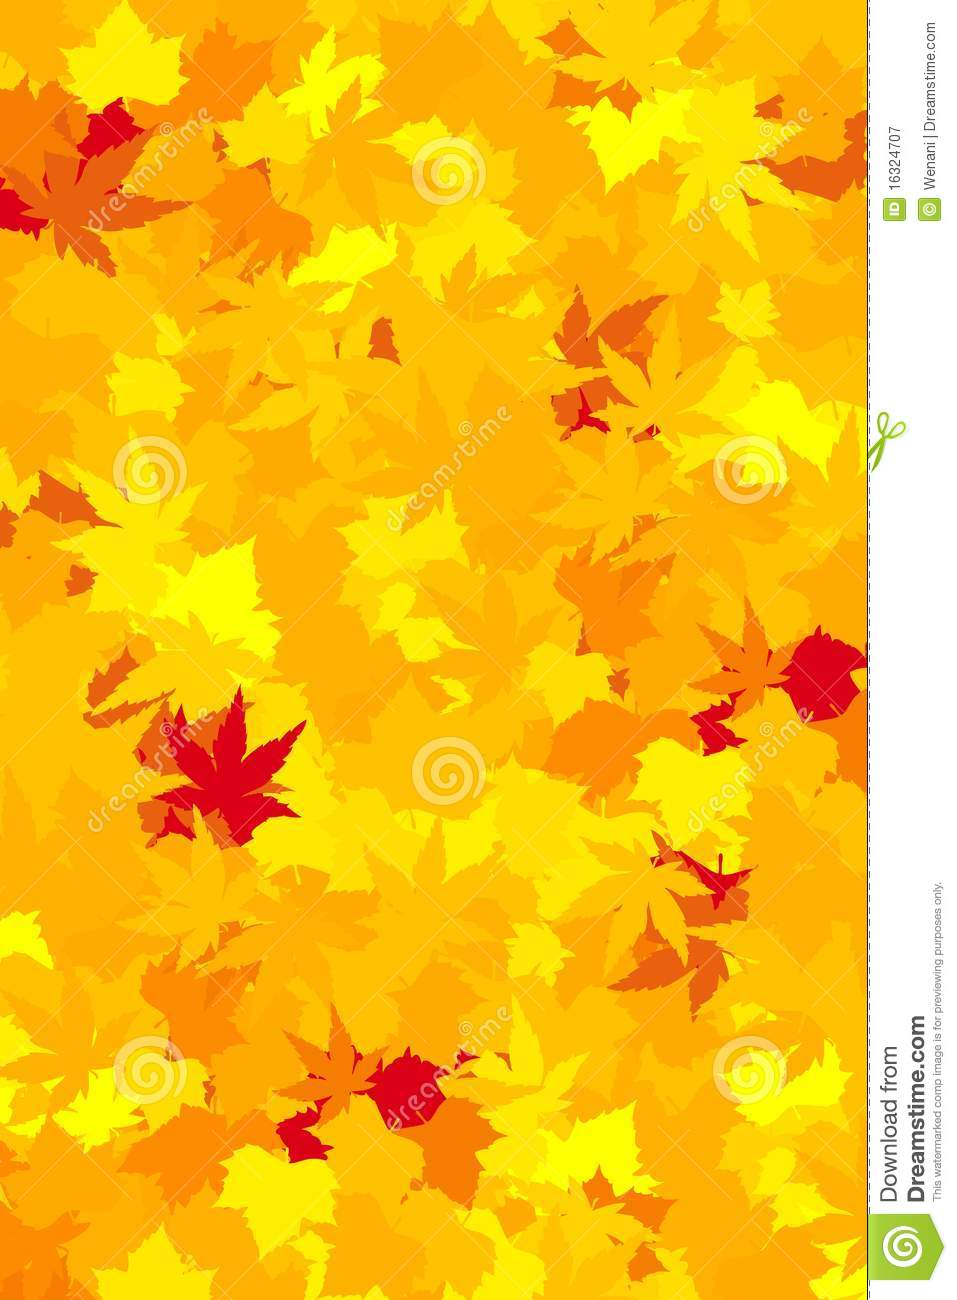 Fall Leaves Wallpaper Stock Vector Illustration Of